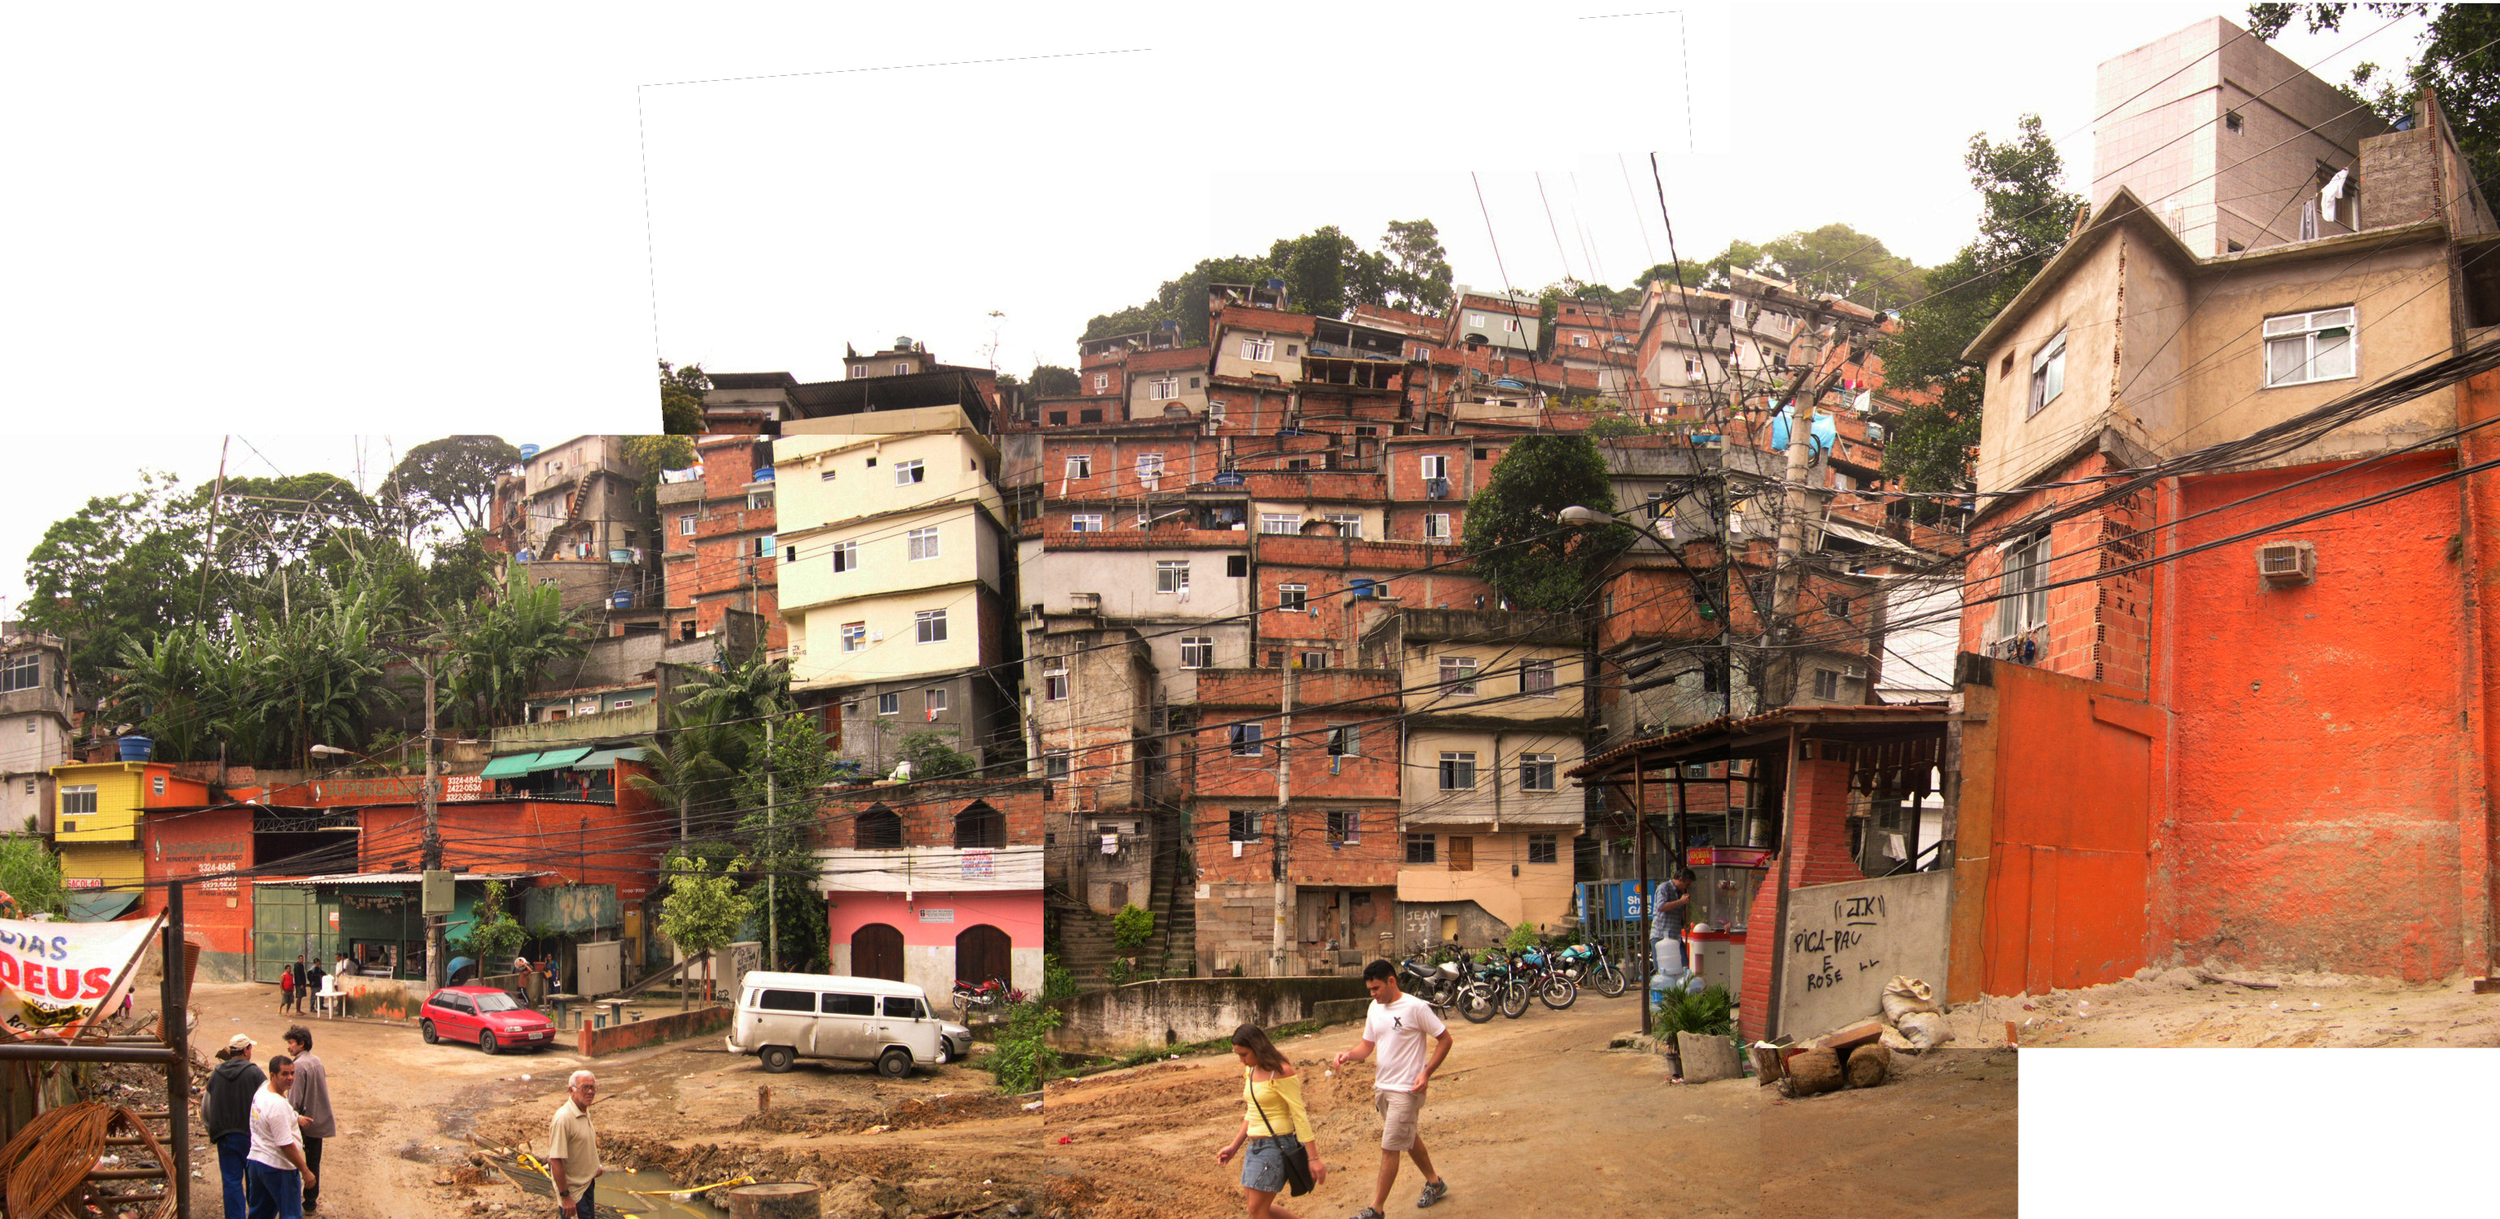 ROCINHA_09_EXISTING CONDITIONS.jpg